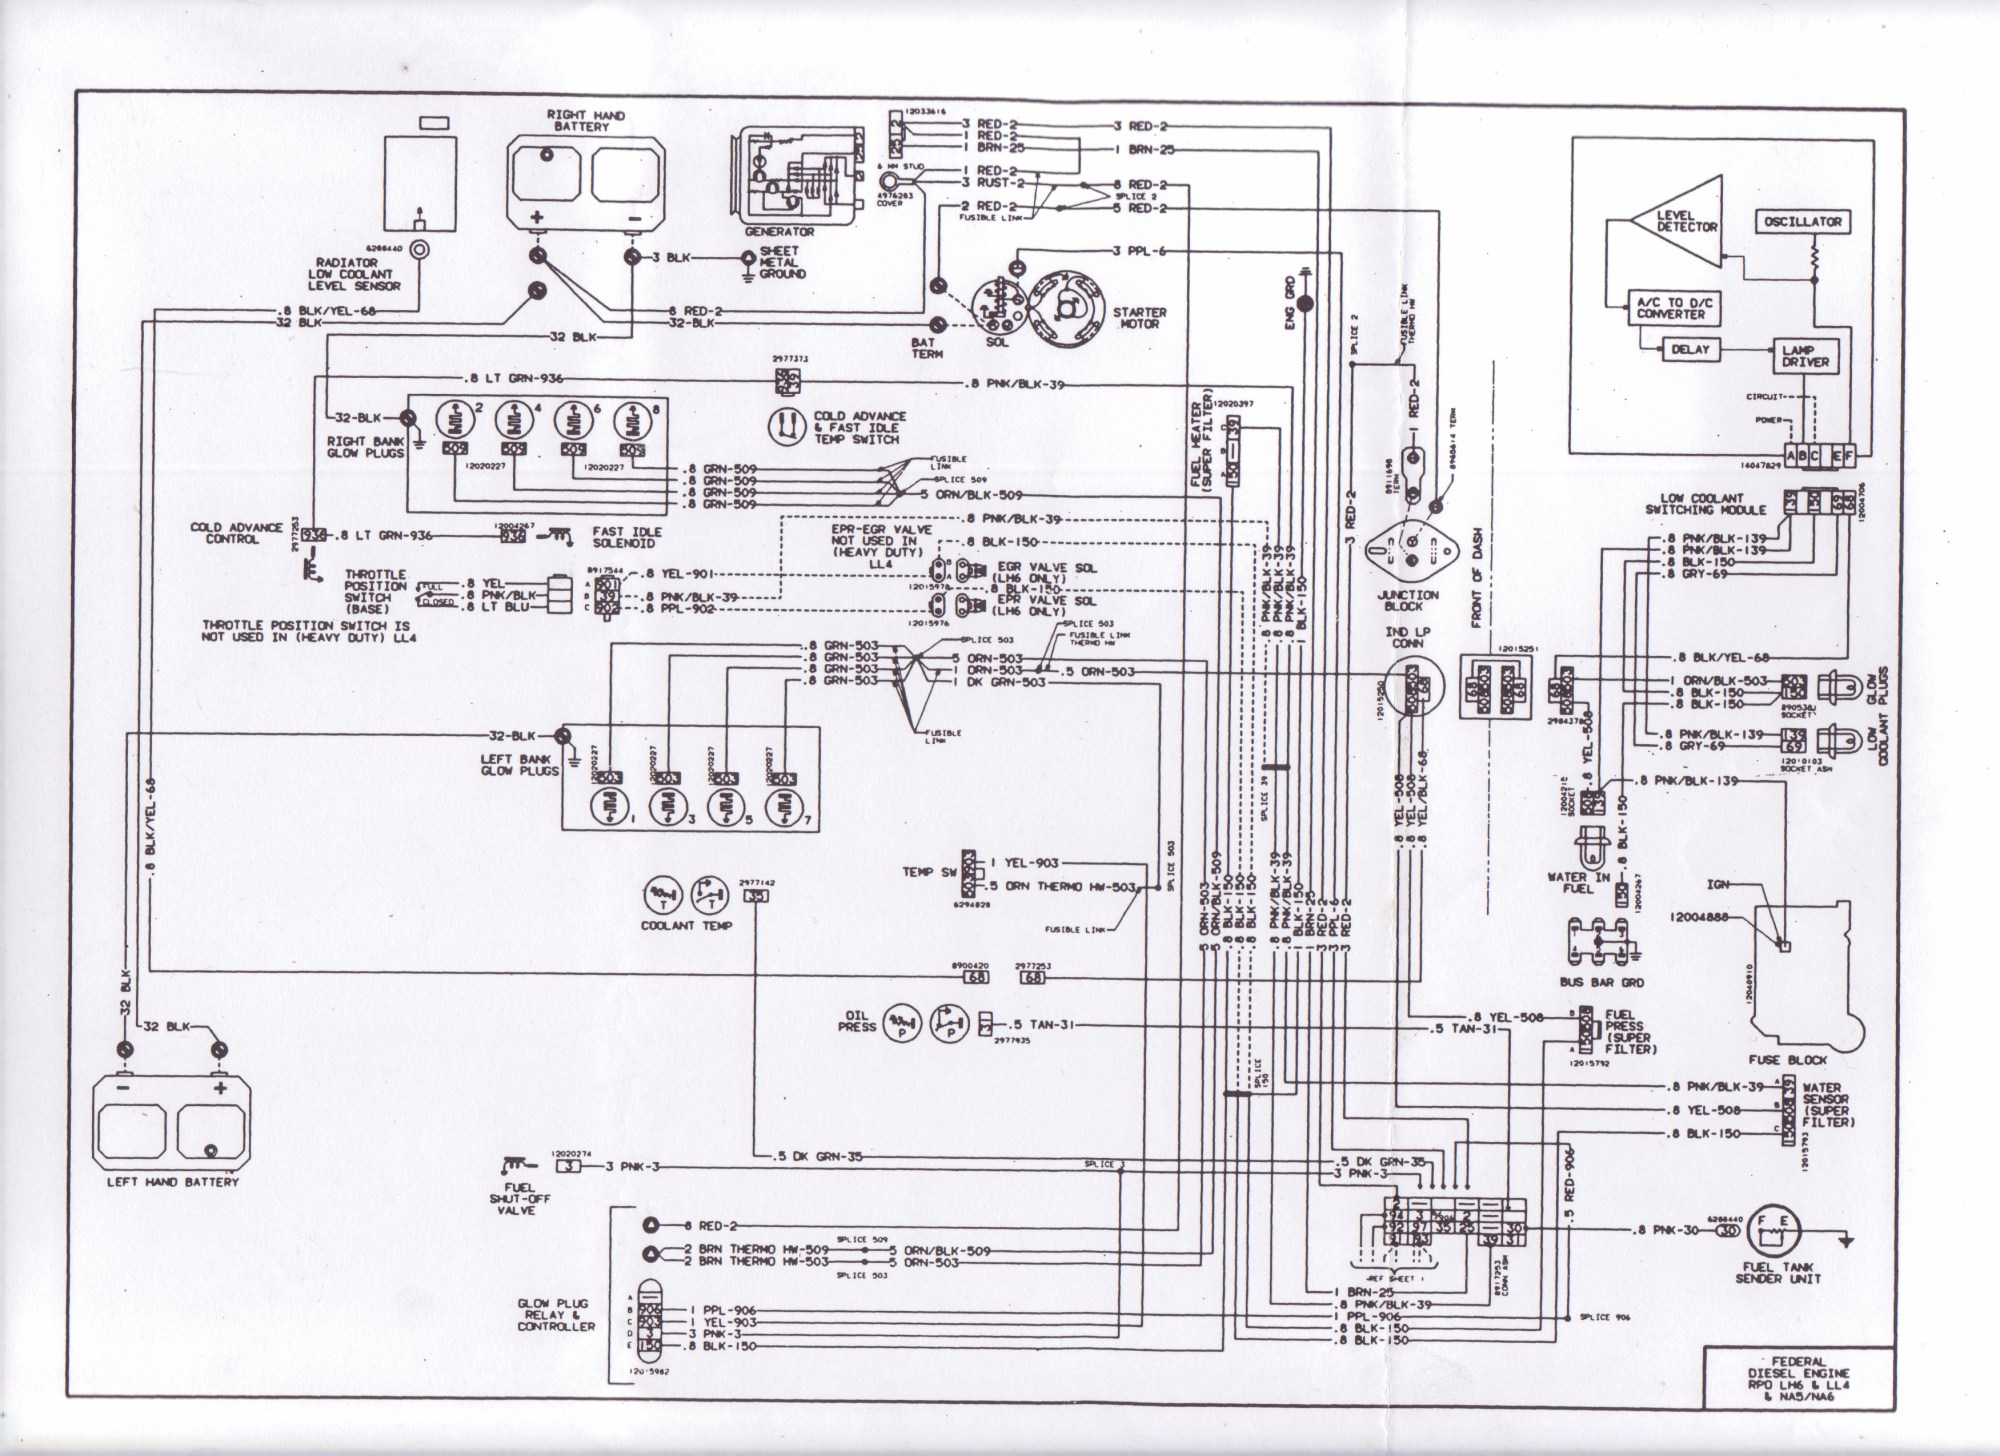 hight resolution of 1983 wiring diagram diesel place chevrolet and gmc diesel truck 2001 suburban radio wiring diagram 1983 suburban wiring diagram